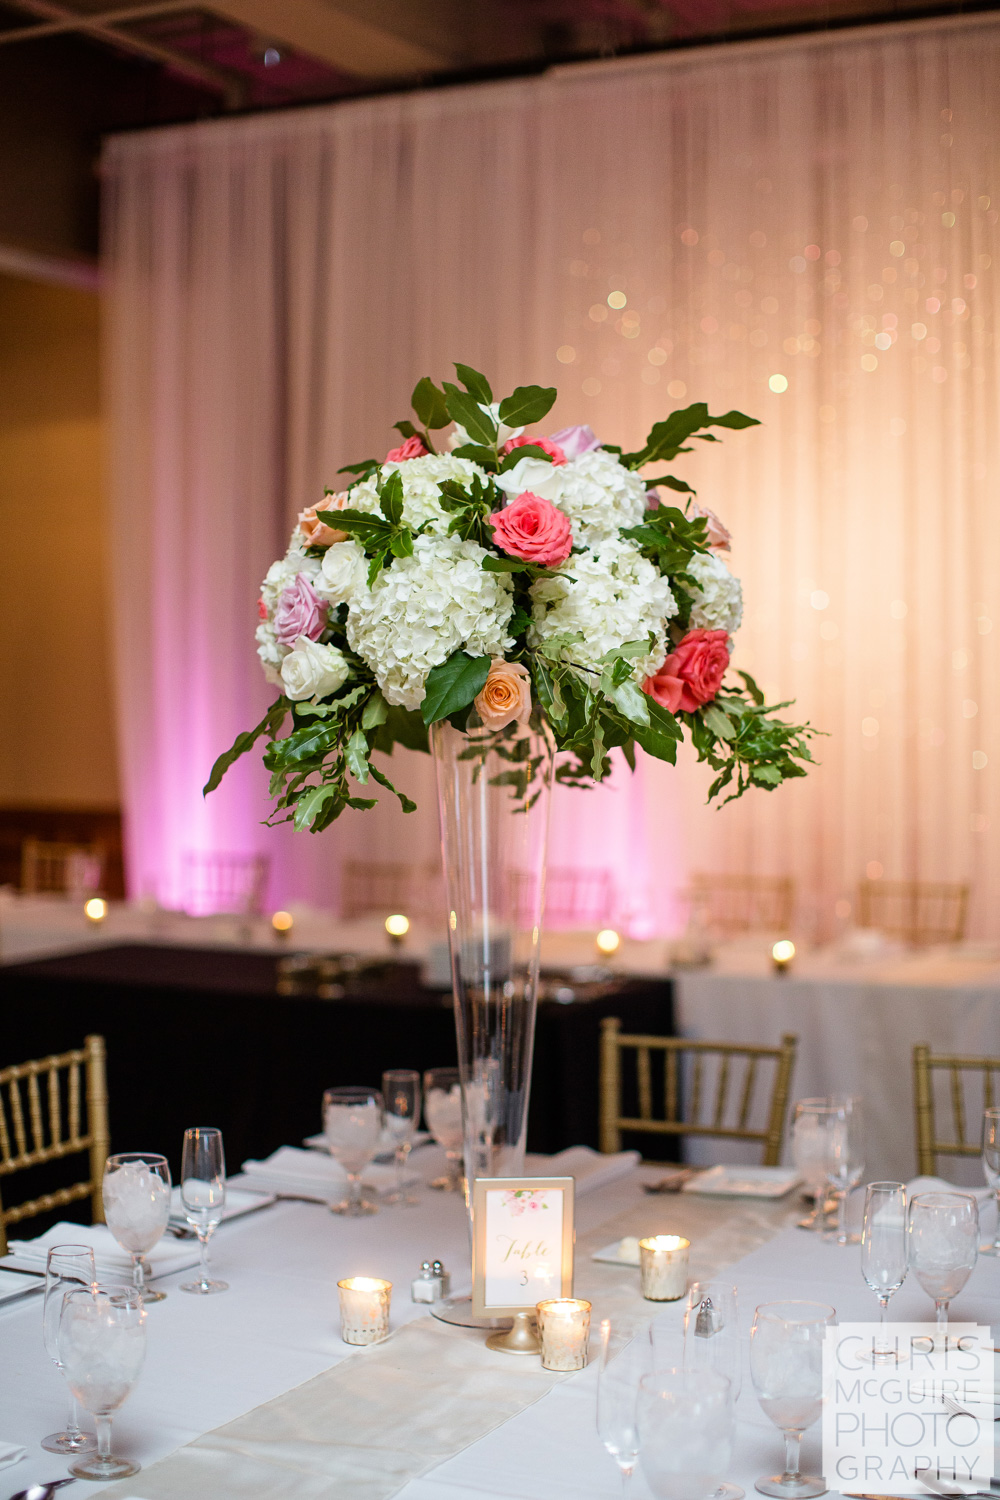 floral centerpiece at wedding reception